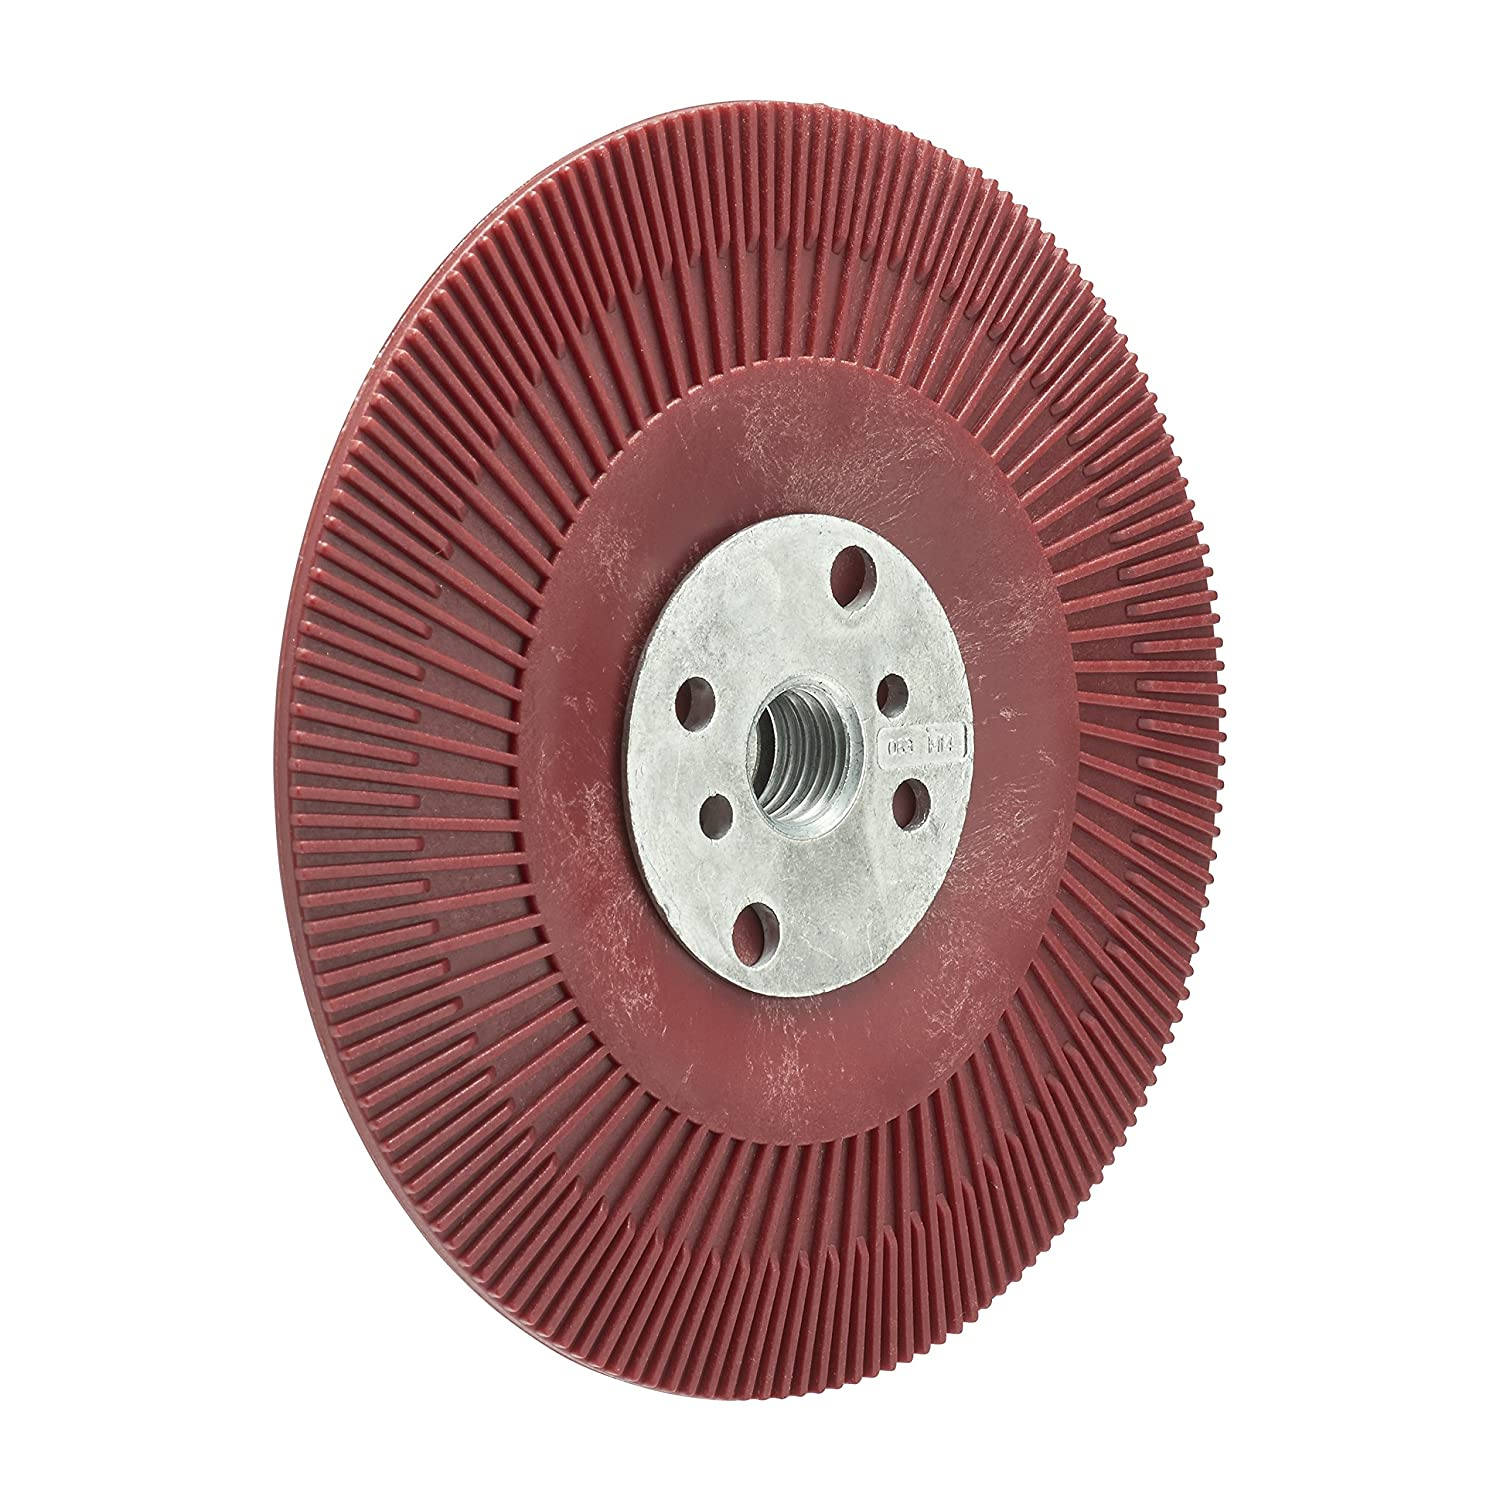 3M High Performance Back-Up Pad Red Flat Soft 115 mm 1 Pad//Box M14